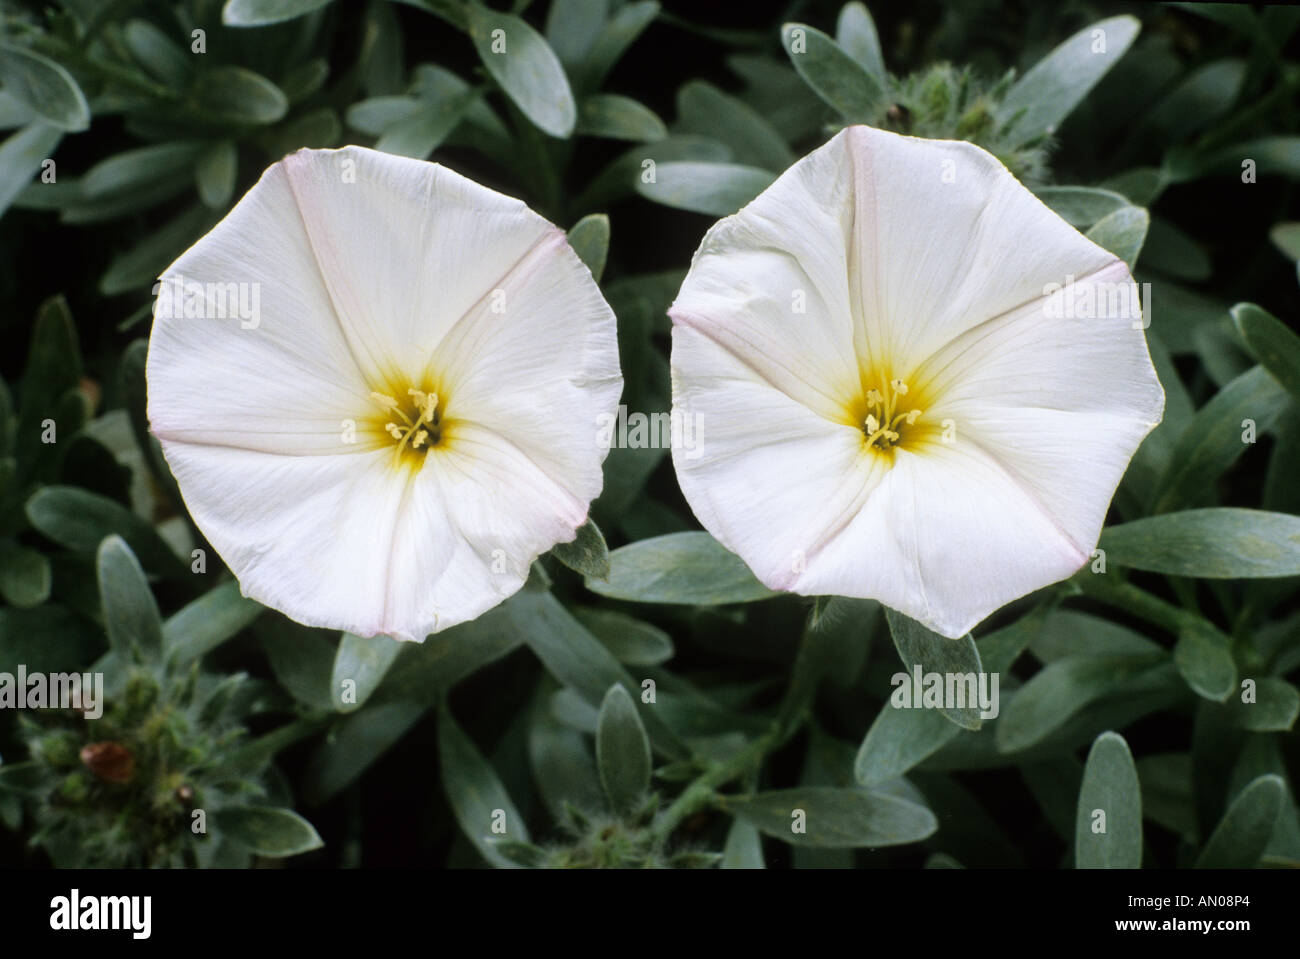 White climbing flowers choice image flower decoration ideas nice climbing plant with white flowers images images for wedding convolvulus cneorum climbing garden plant white mightylinksfo Gallery